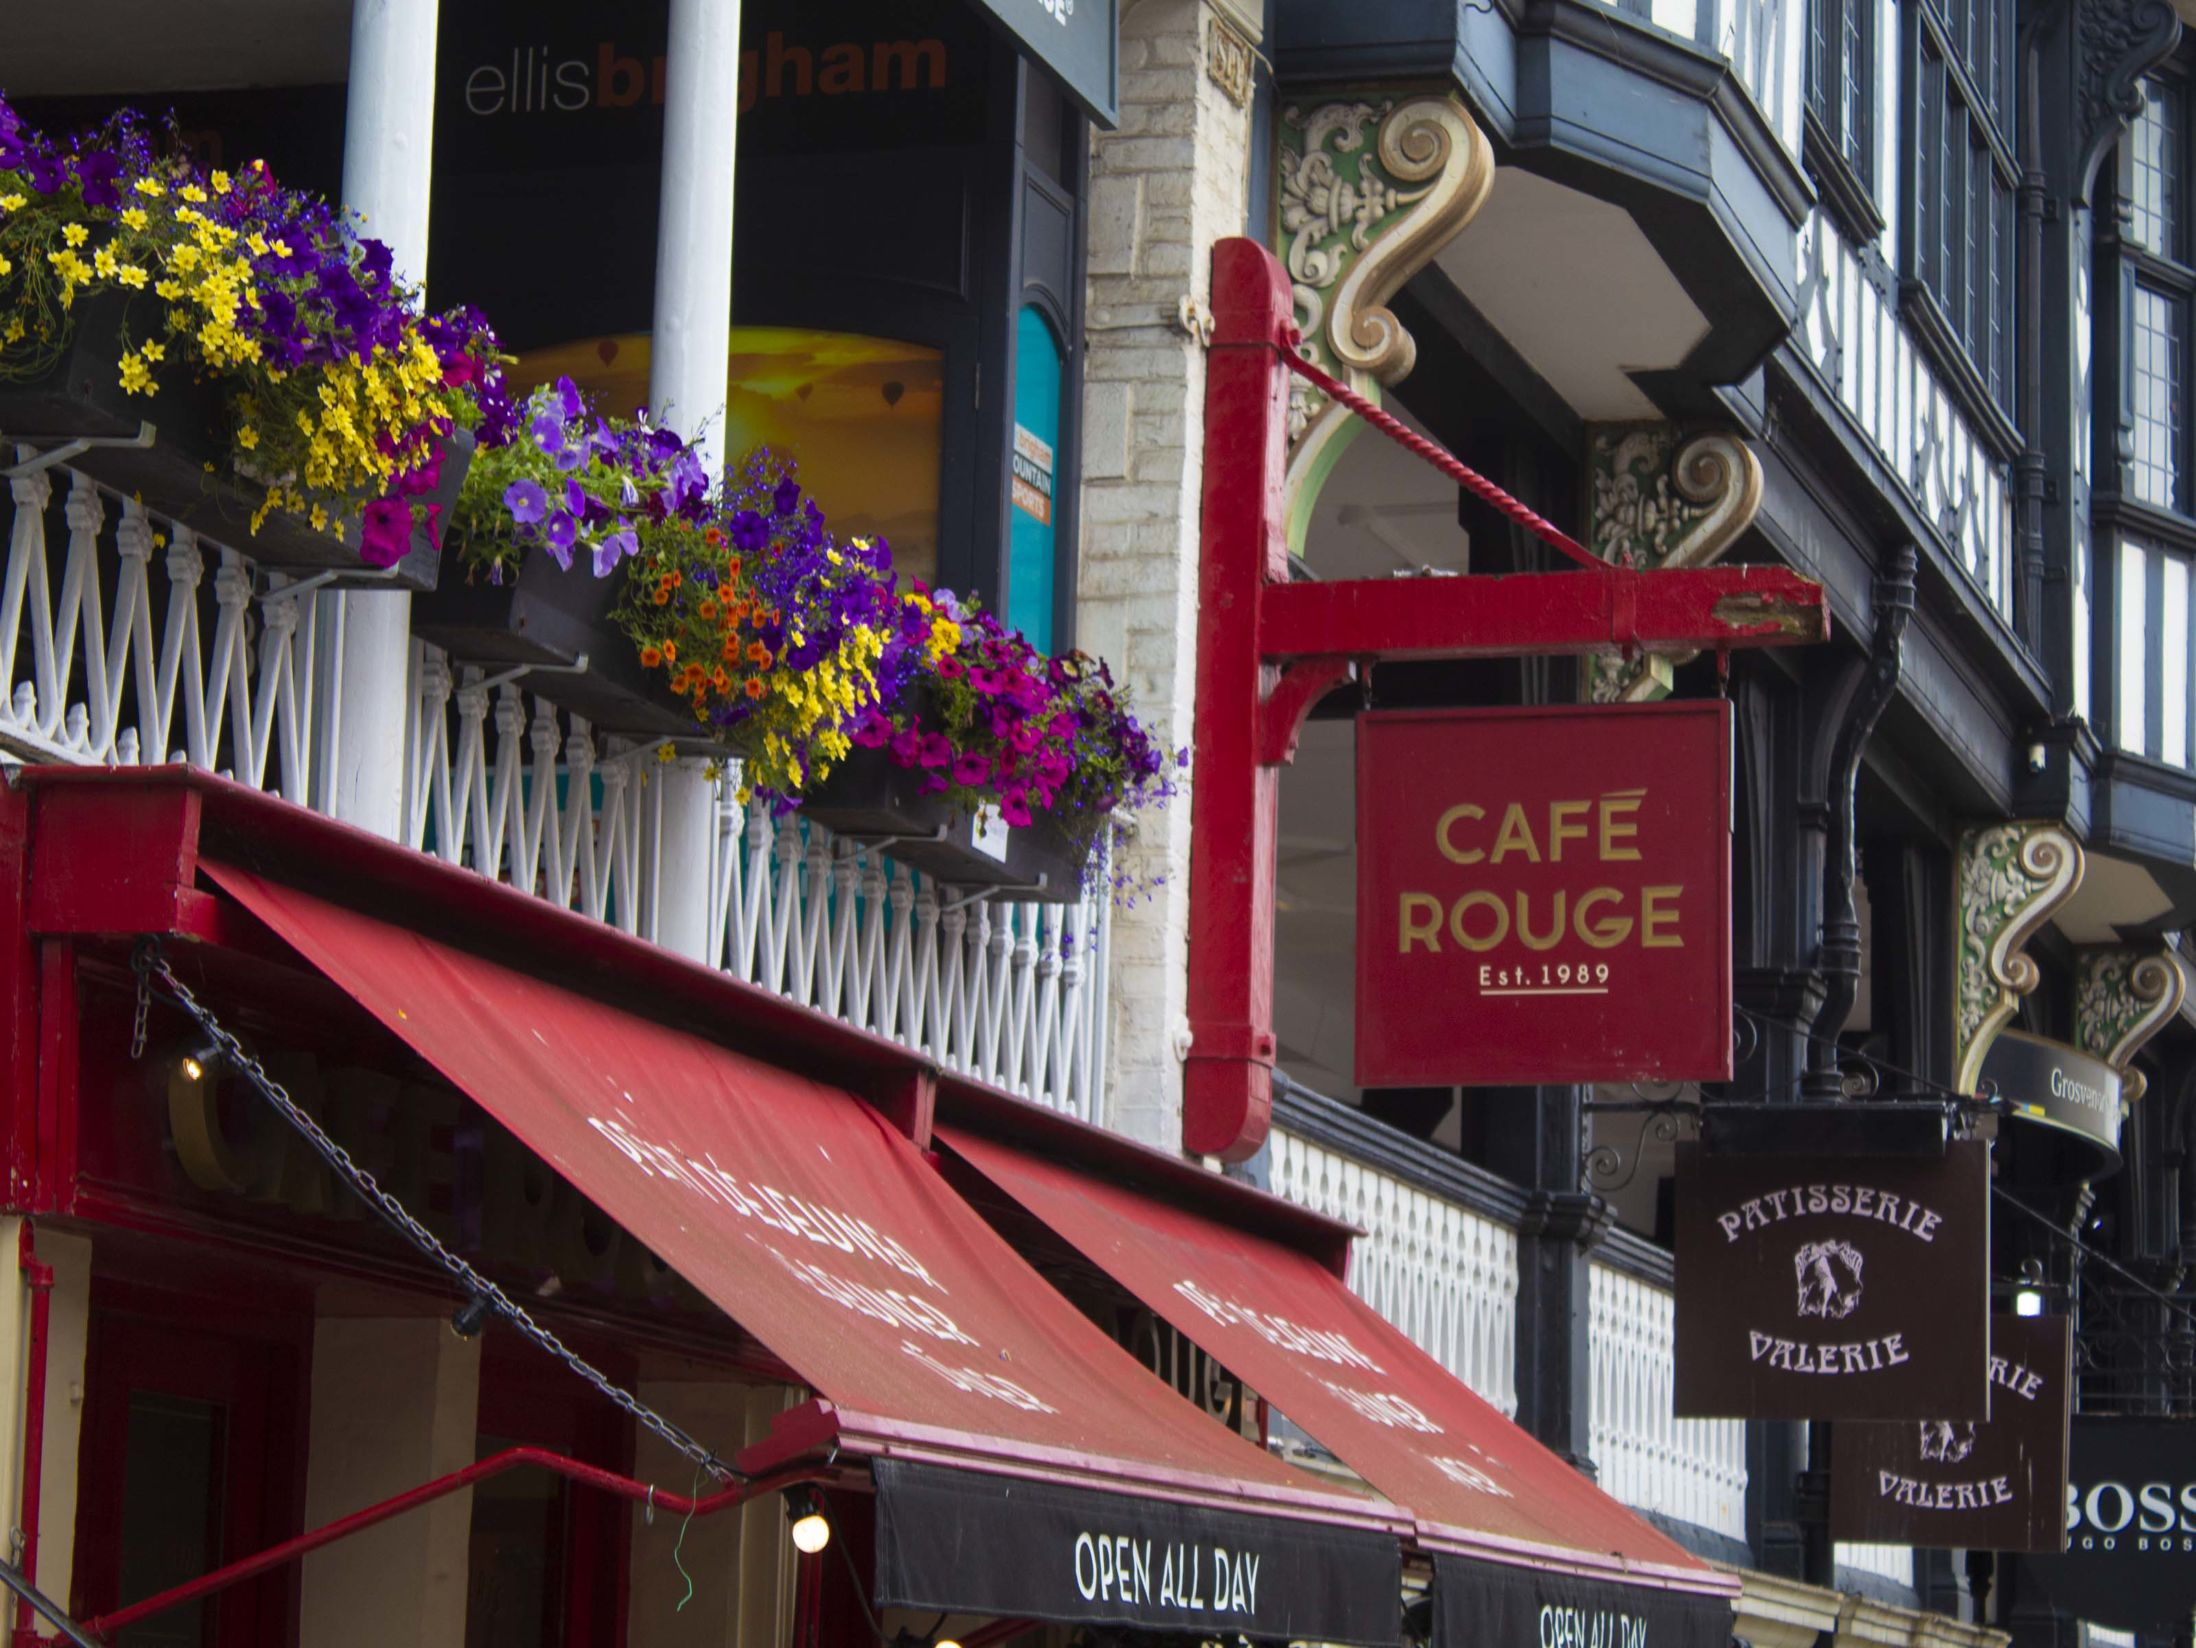 Cafe Rouge - Best Breakfast in Chester